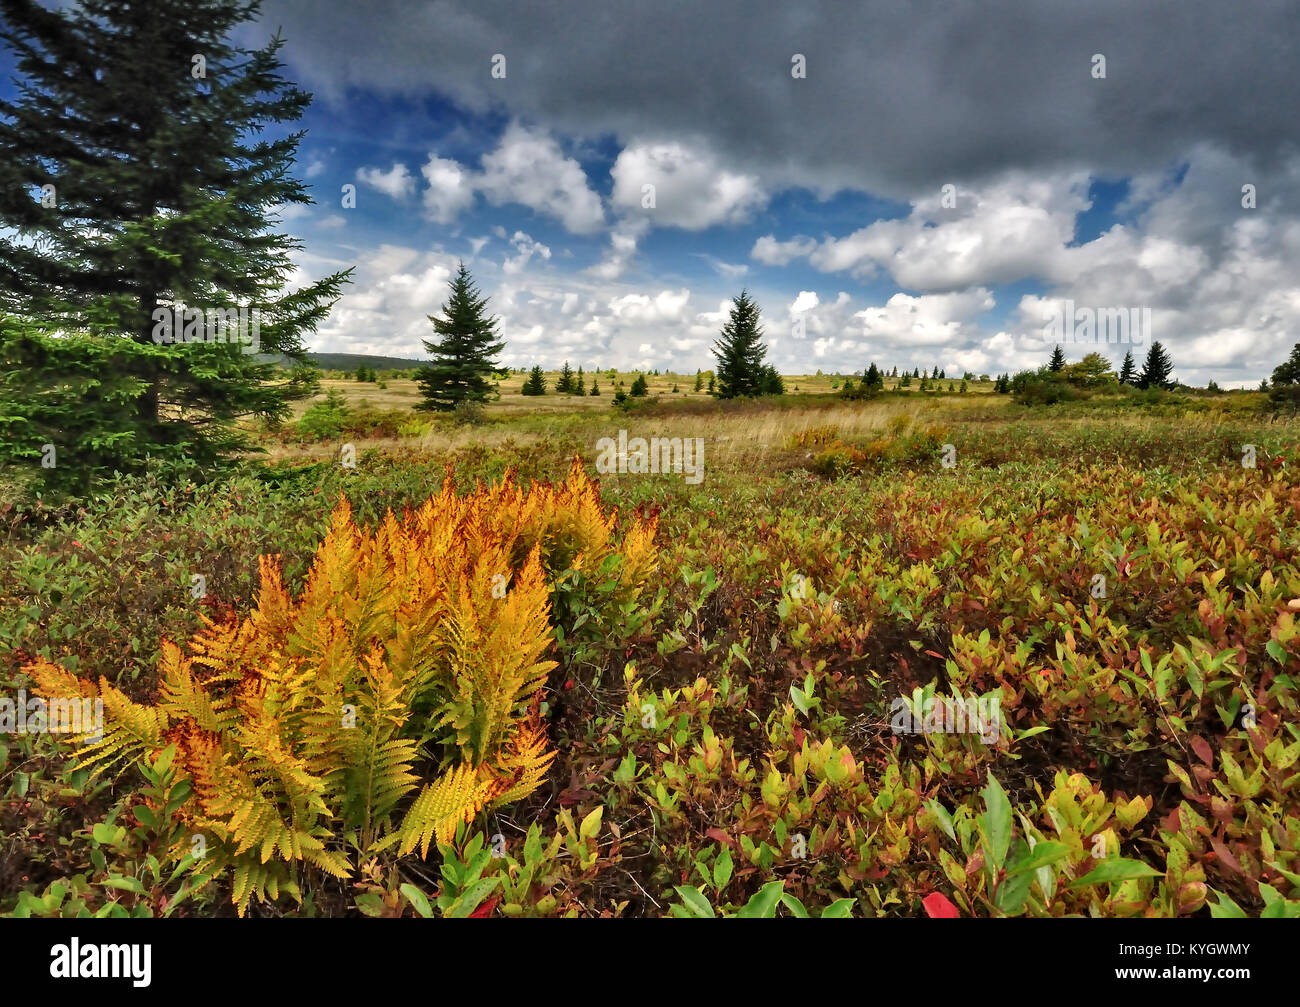 Grassy meadow at Dolly Sods West Virginia - Stock Image